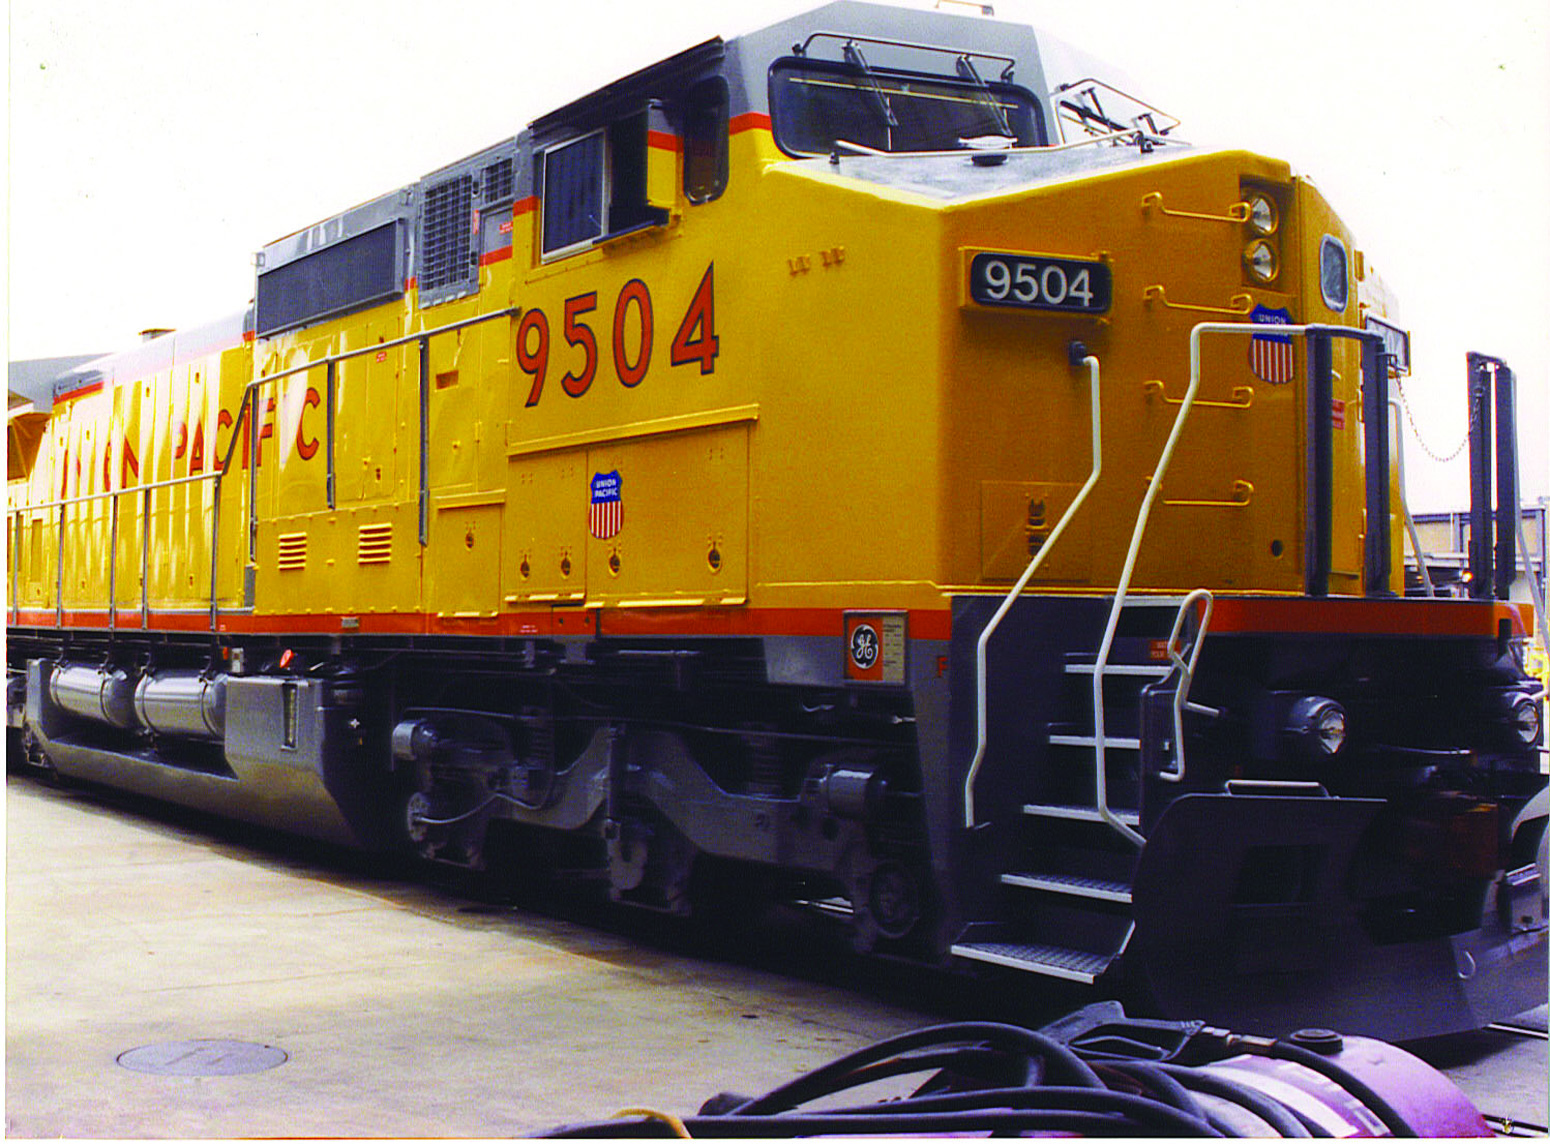 Union Pacific Railroad No. 9504